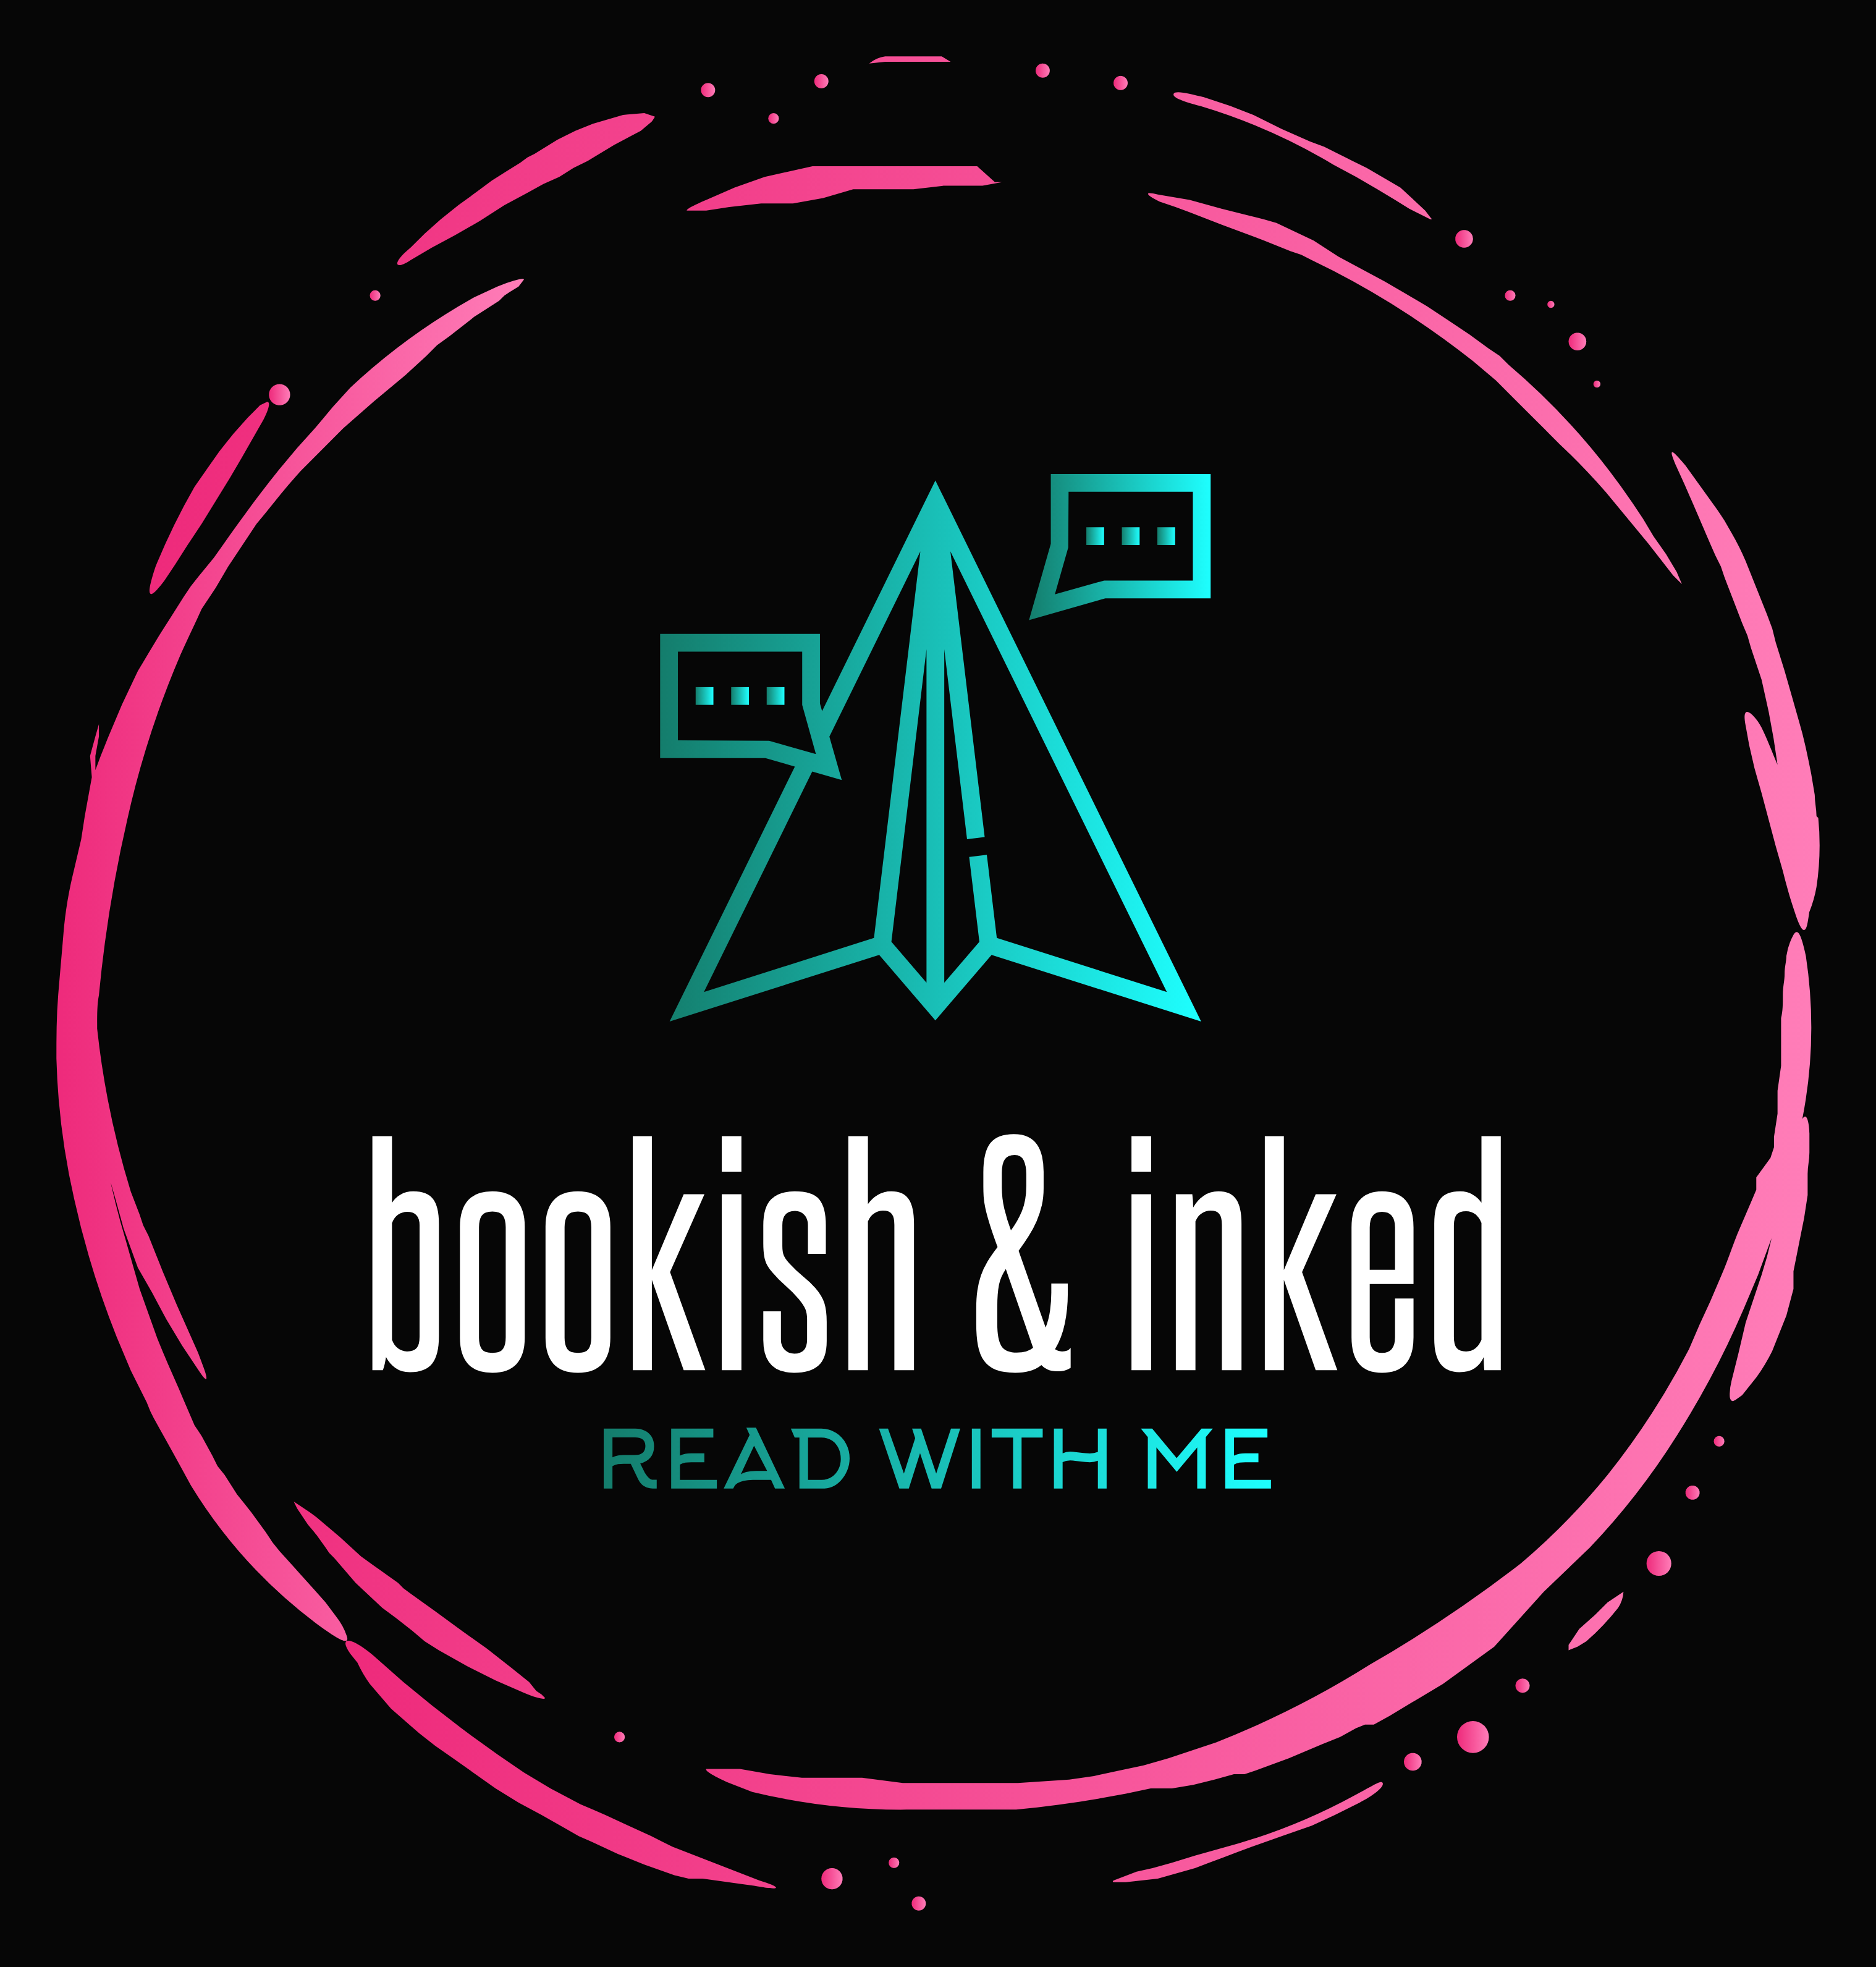 Bookish and Inked logo: a hot pink broken circle surrounding a teal paper airplane with comment bubbles on either side. bookish & inked is below with Read with me as the slogan.